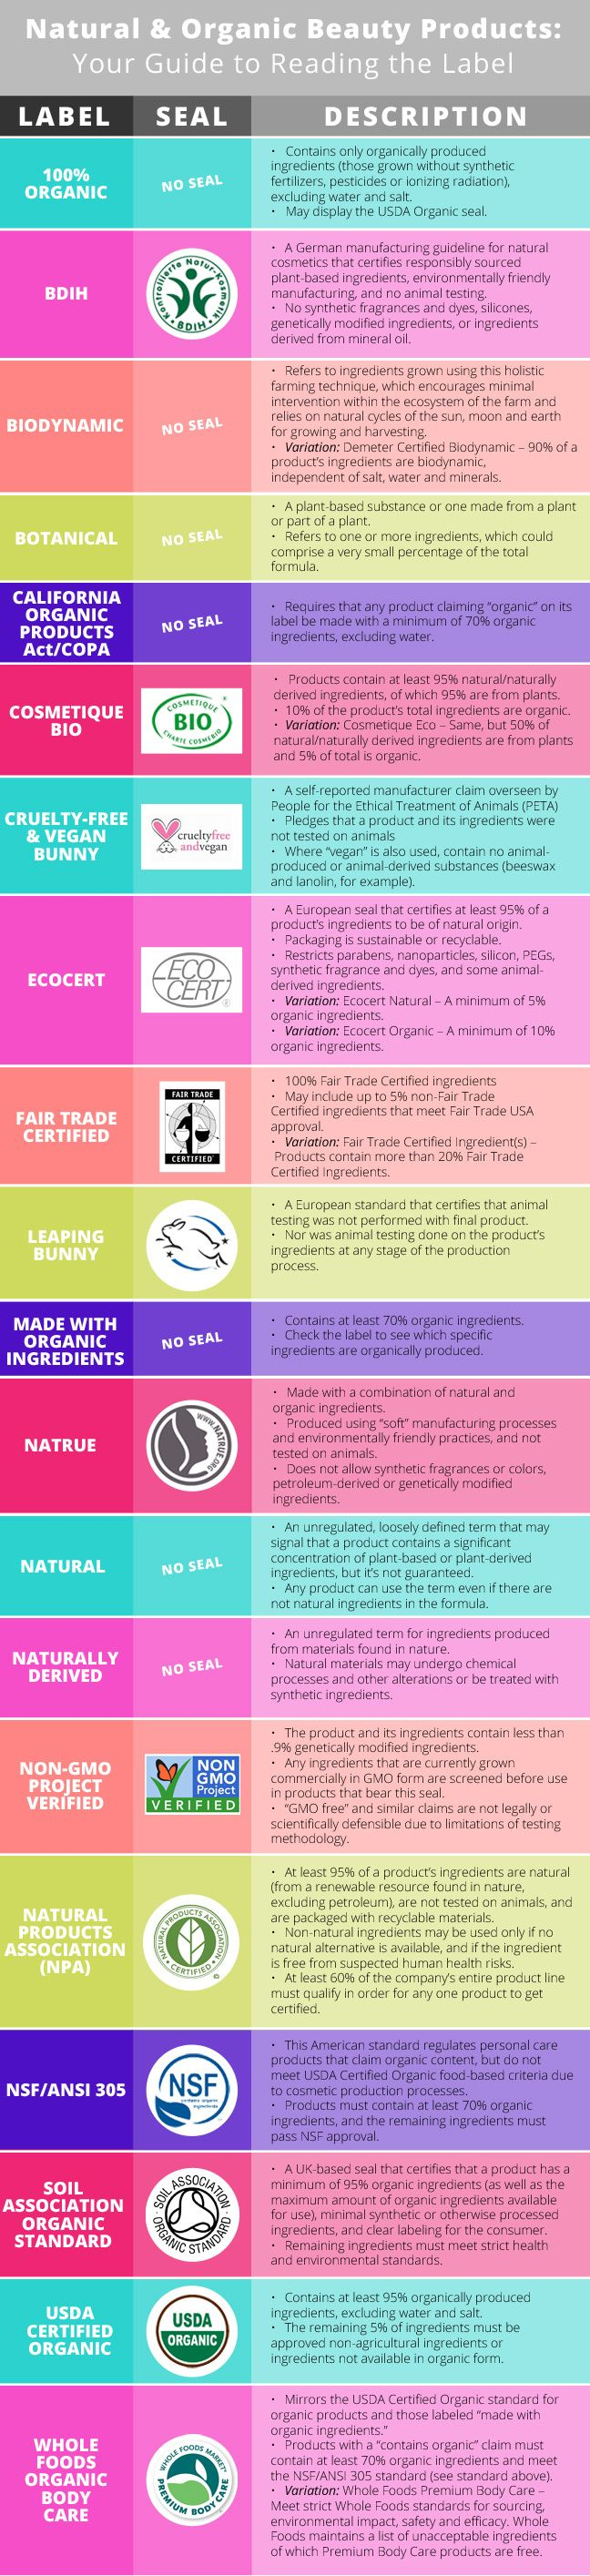 Natural & Organic Beauty Products: Your Guide to Reading the Labels (Infographic)